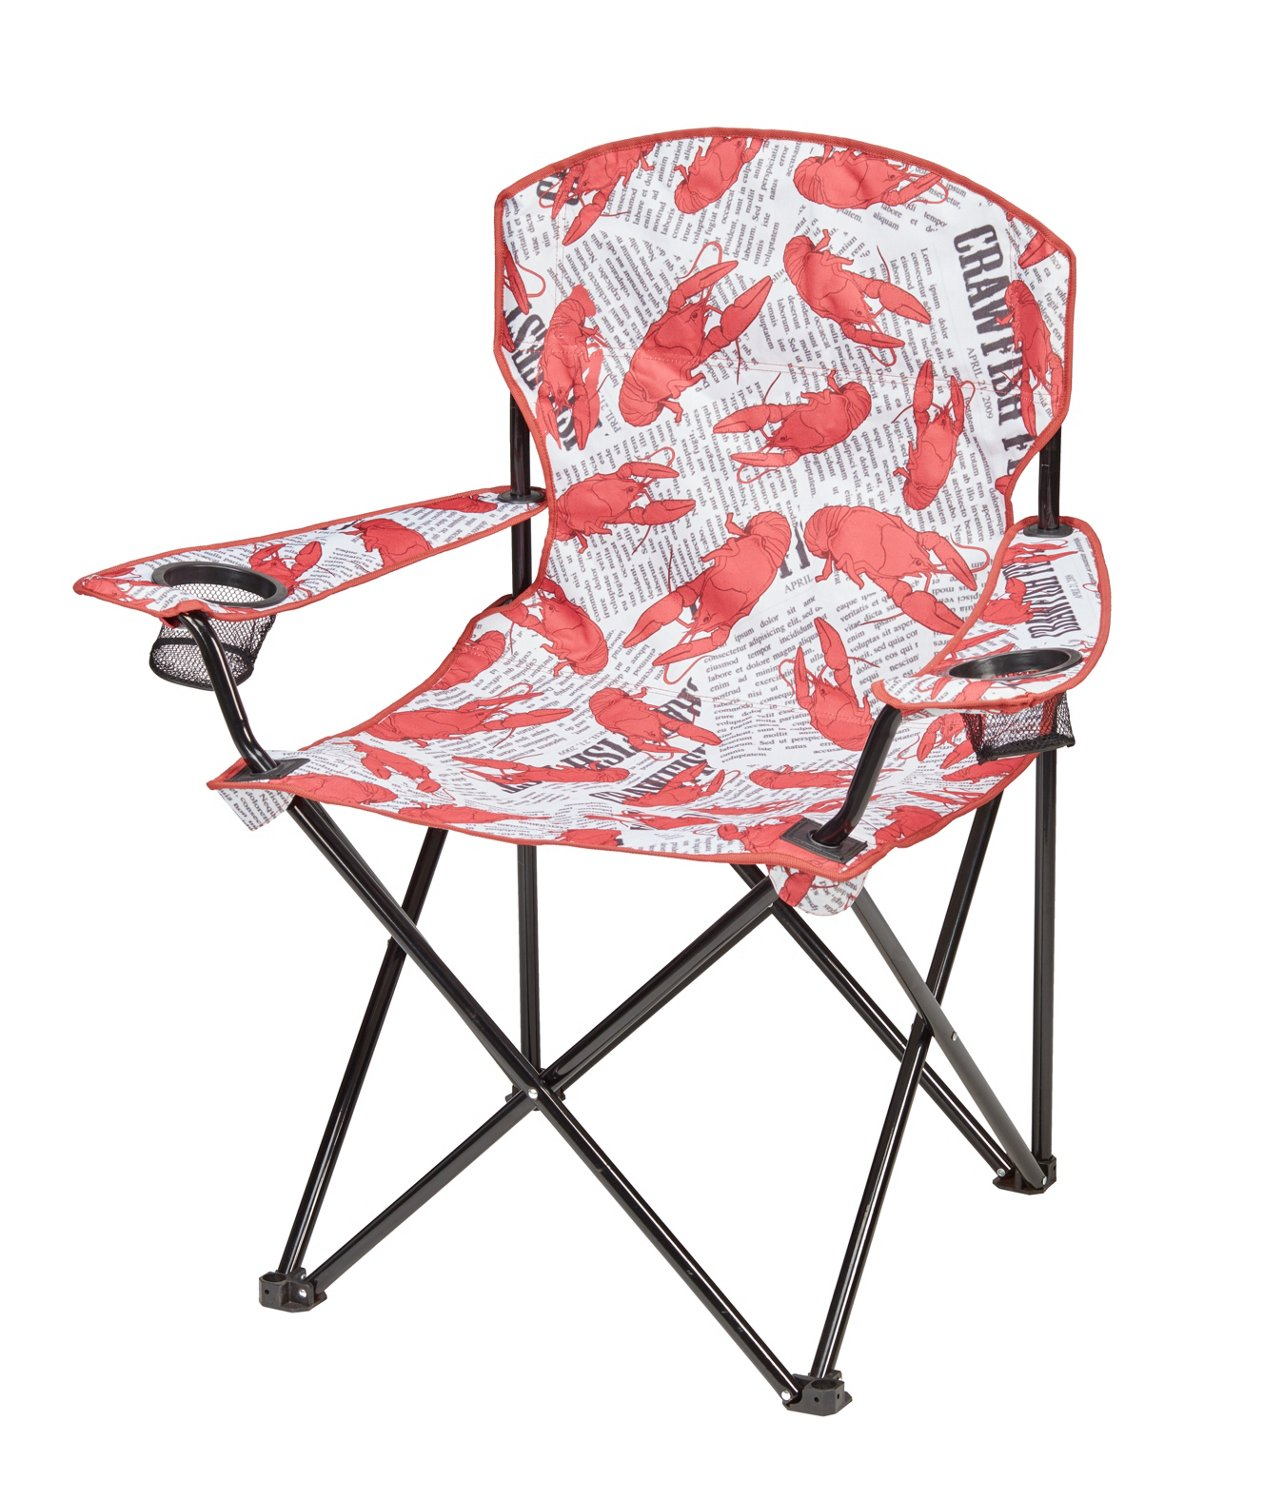 bunjo bungee chair academy outdoor swing folding chairs plastic wooden fabric metal display product reviews for sports outdoors oversize mesh logo